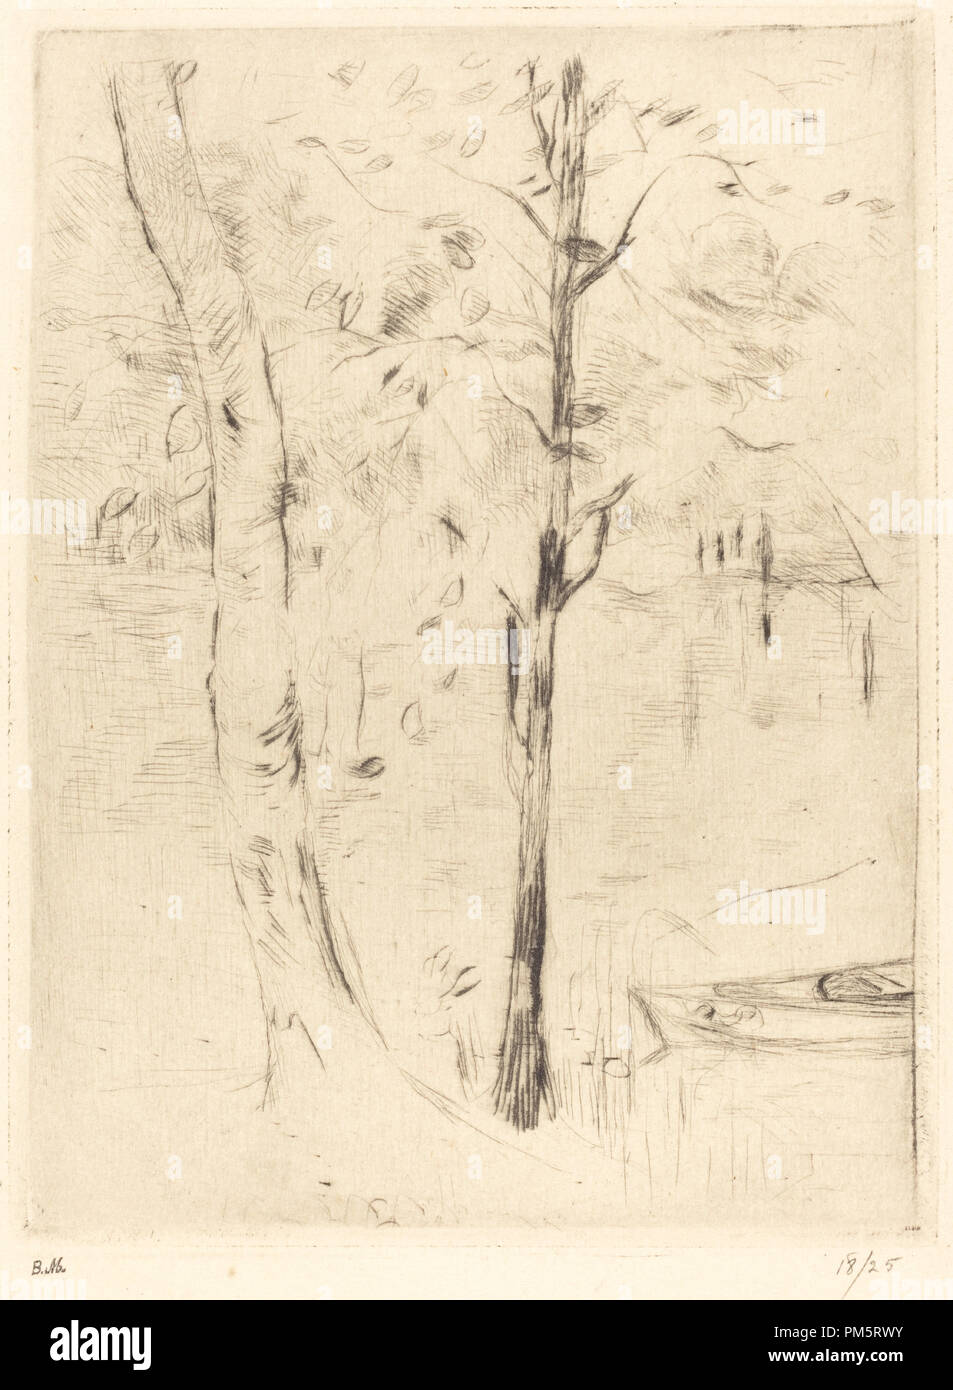 Lake with Rowboat. Dated: 1888/1890. Medium: drypoint [reprinted by Ambroise Vollard]. Museum: National Gallery of Art, Washington DC. Author: Berthe Morisot. - Stock Image